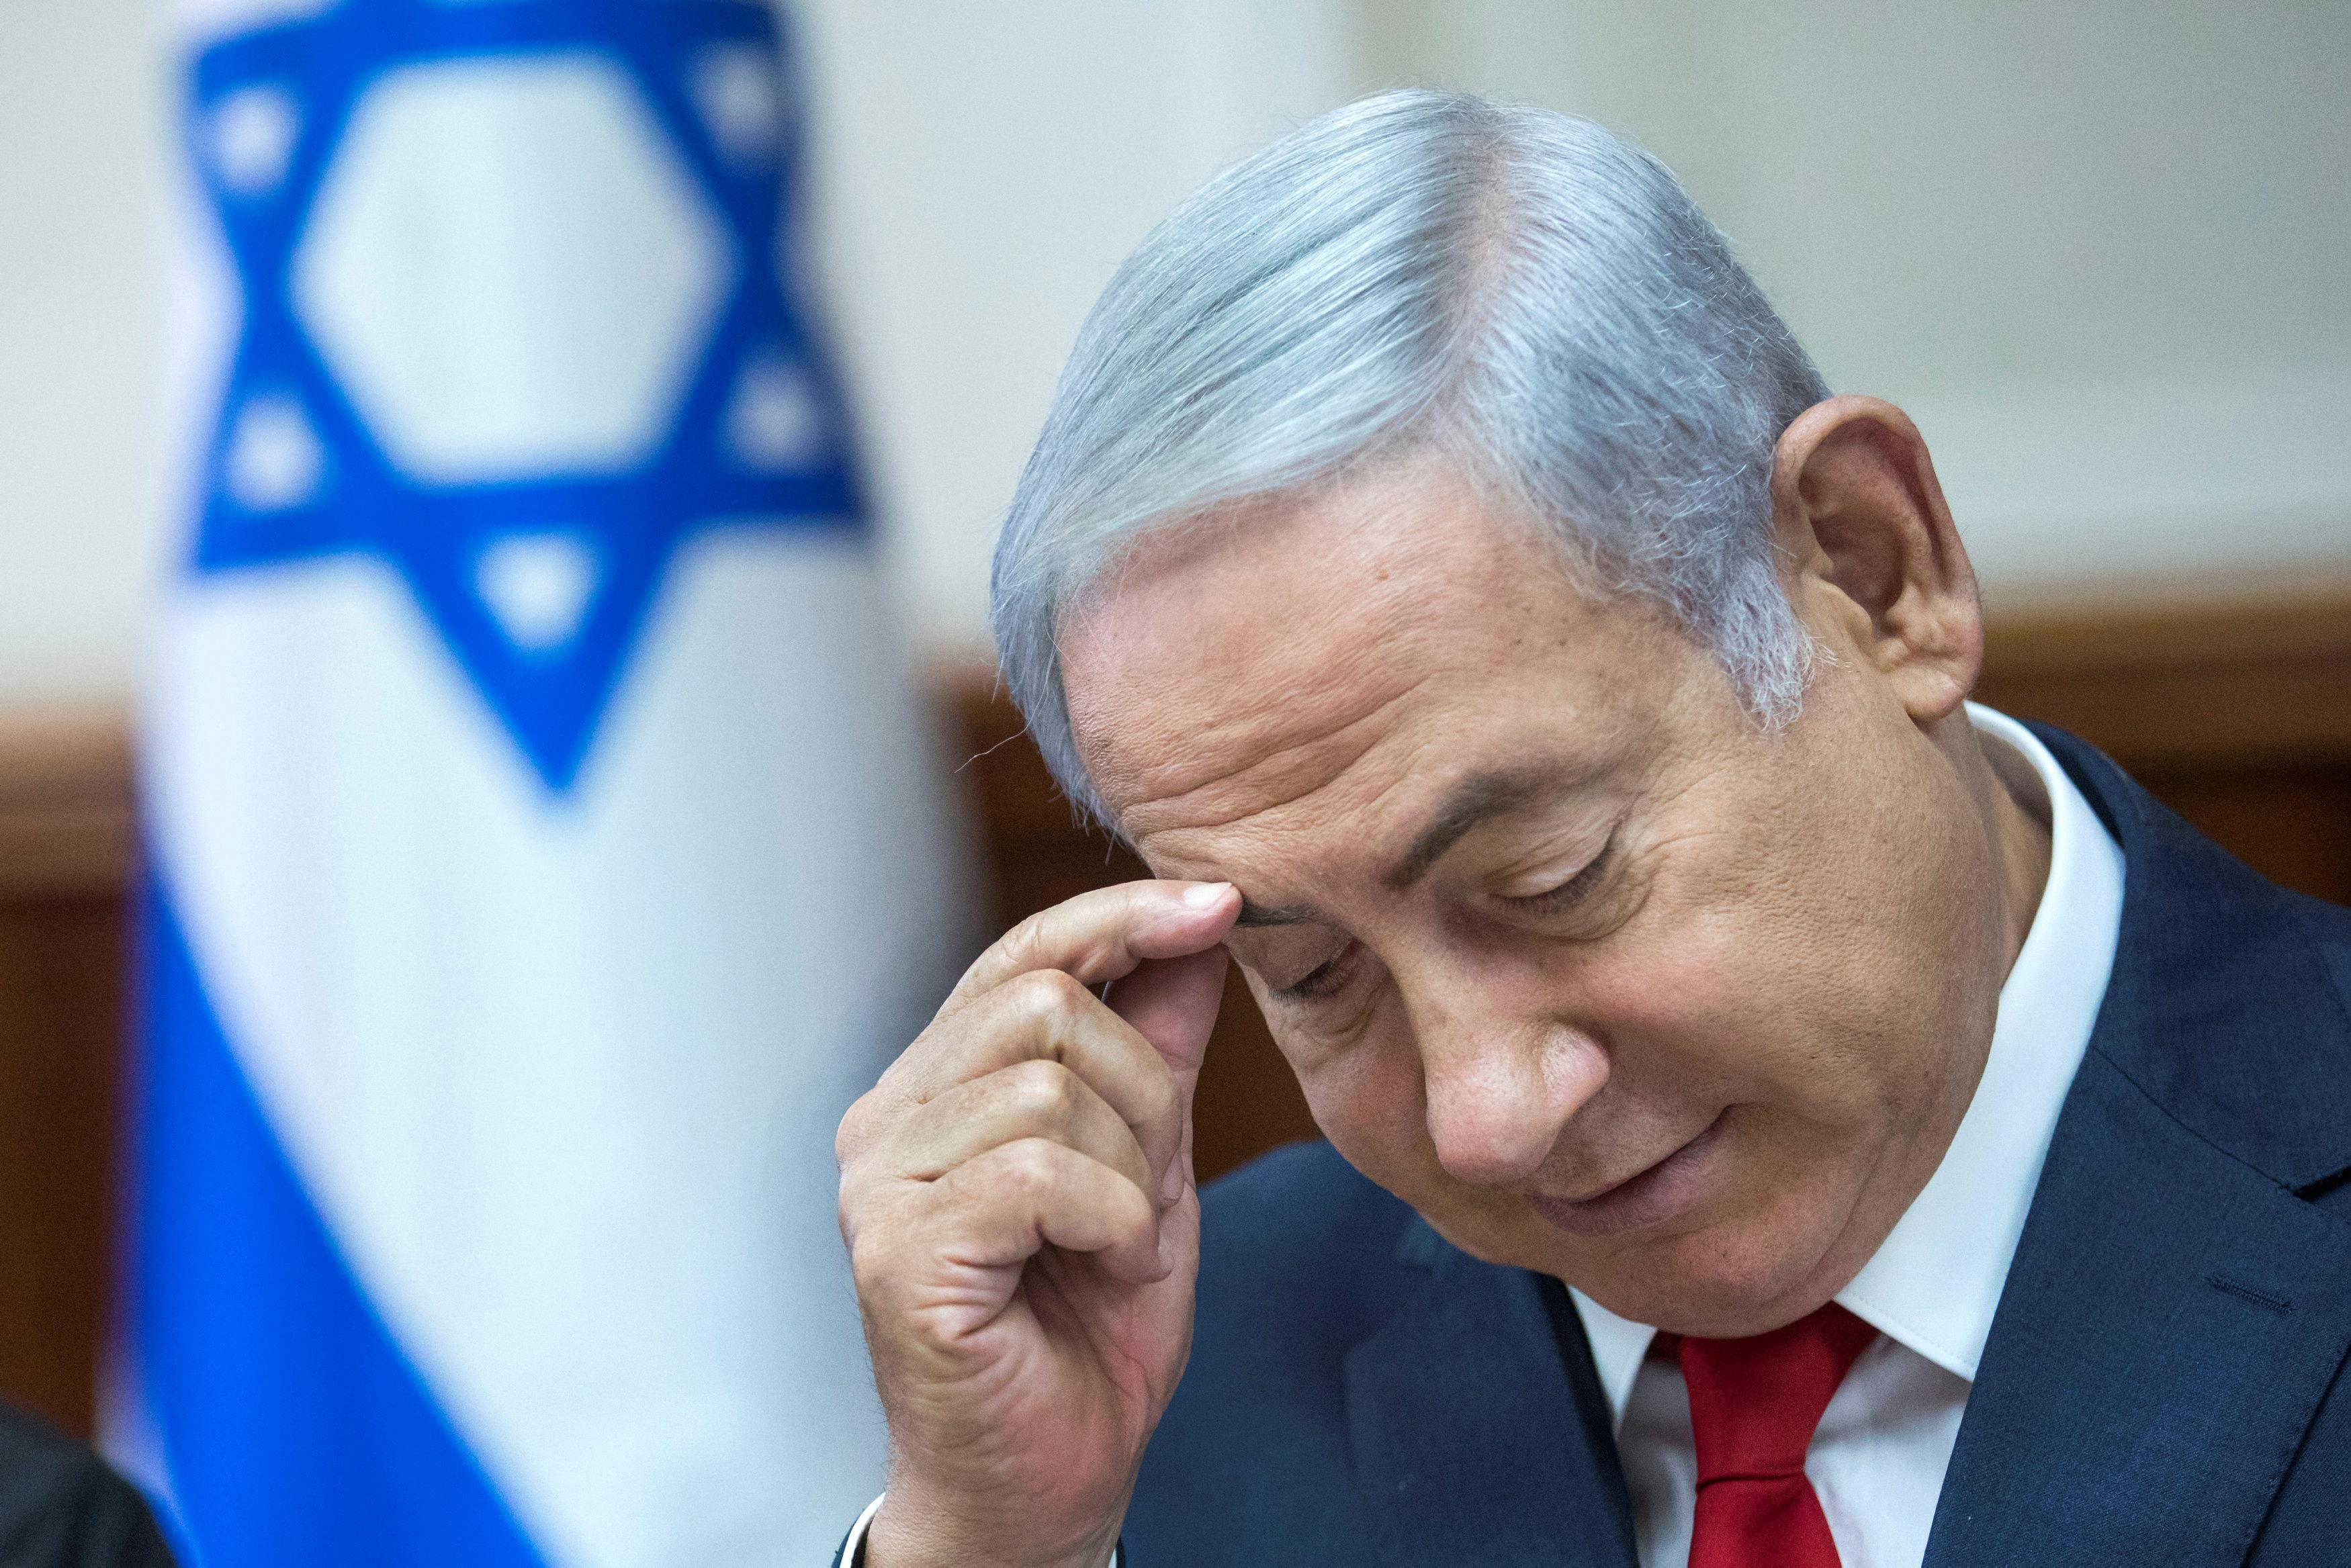 Netanyahu questioned again in telecoms case, sees it 'collapsing'